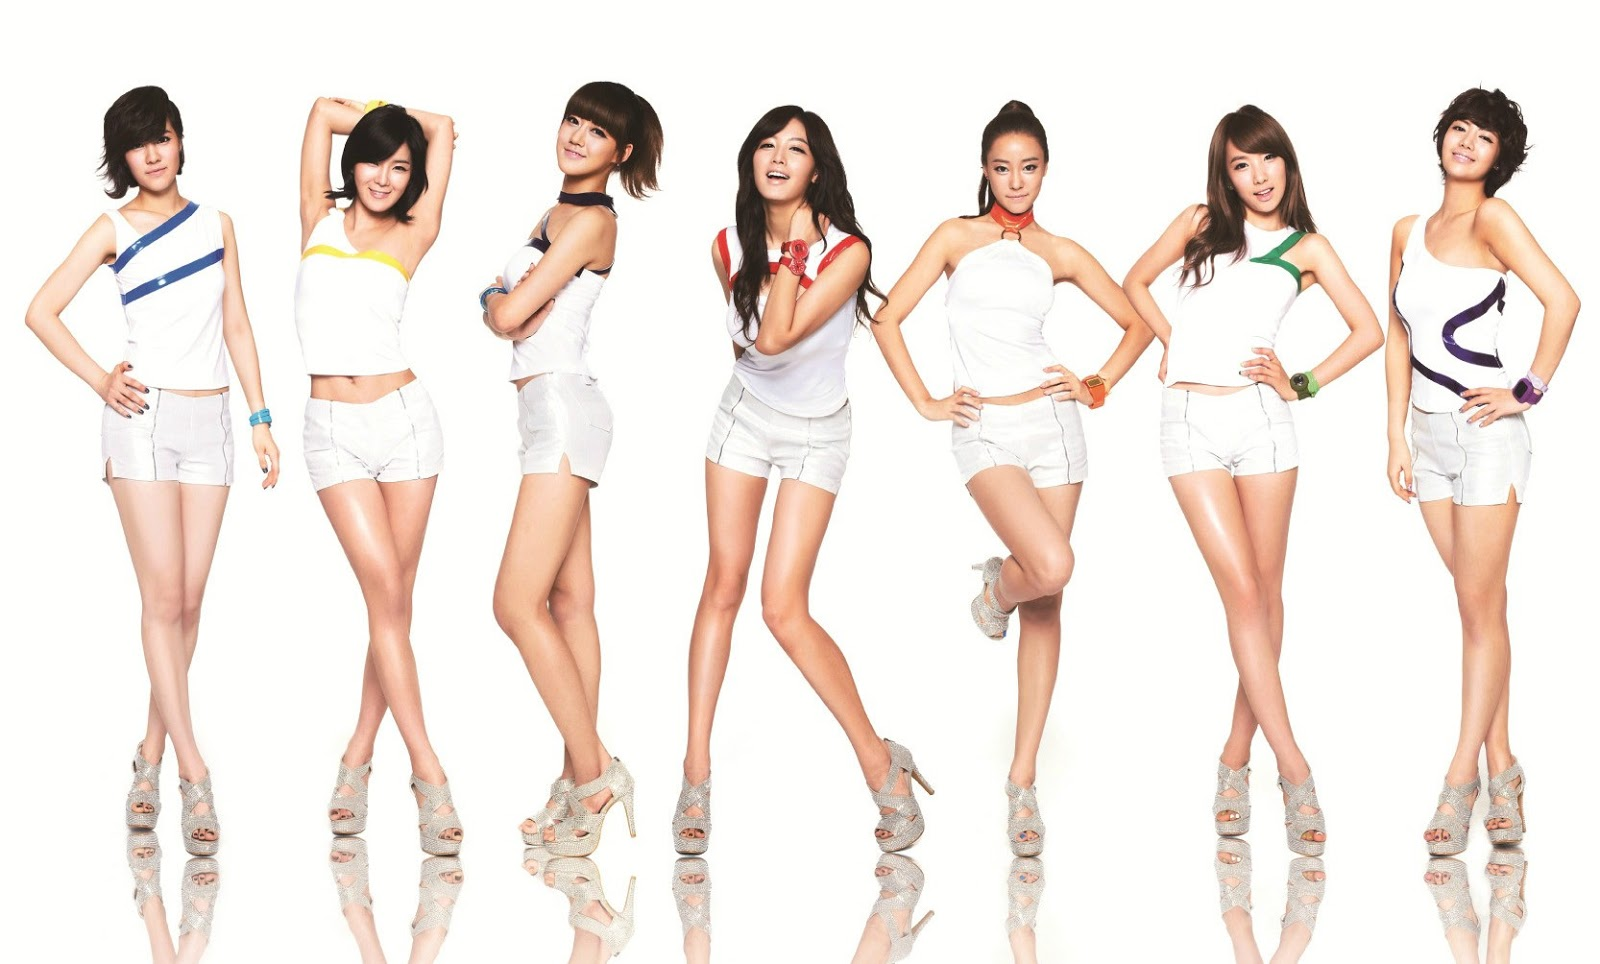 Kpop Group: TWIN TOWERS @LIVE 2013: DEMI LOVATO, 2NE1, BACKSTREET BOYS